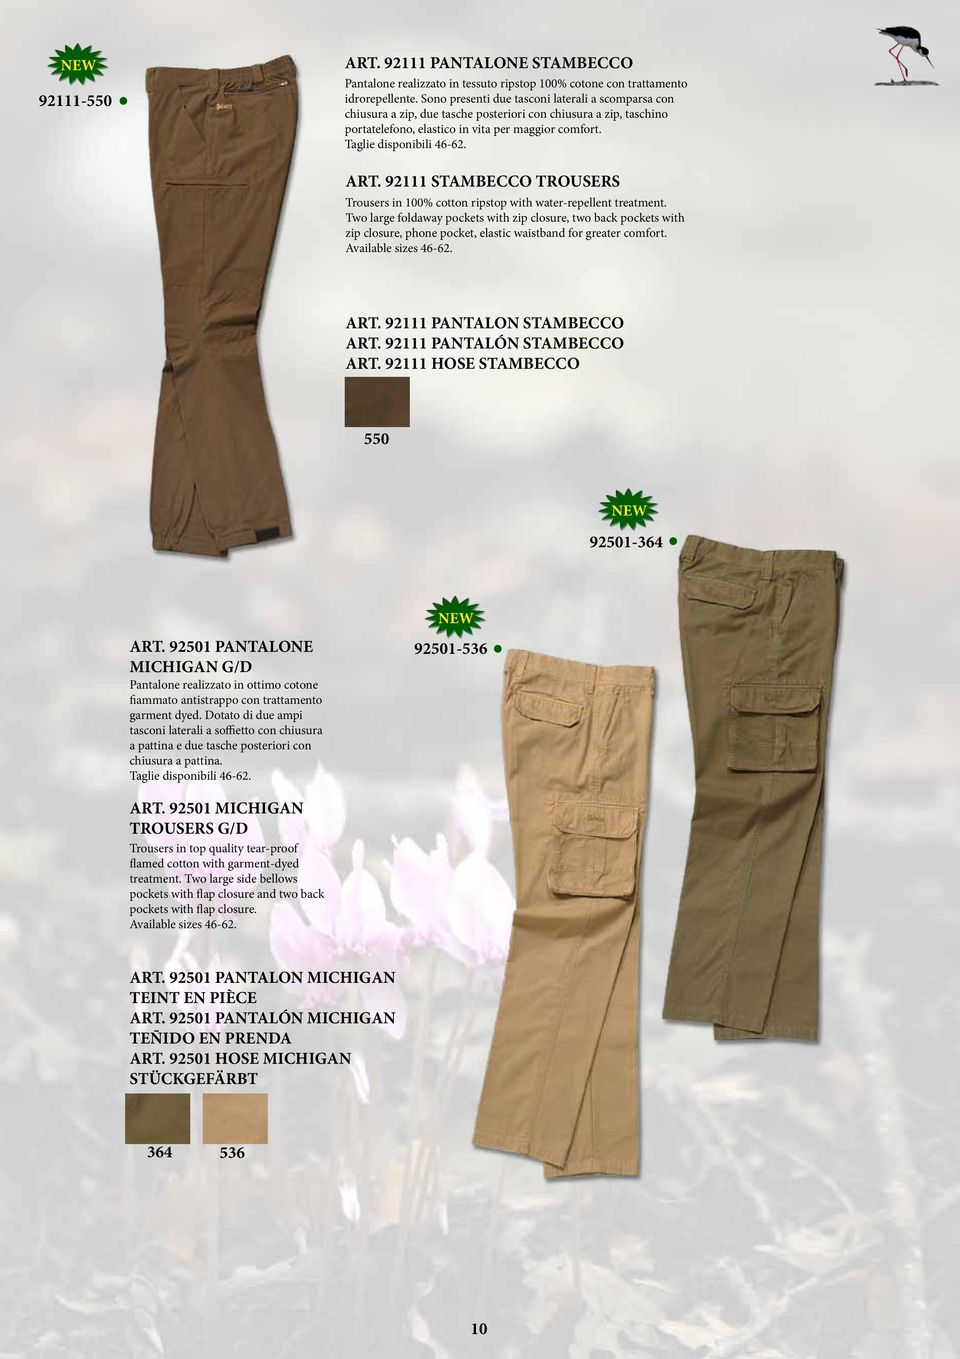 water-repellent treatment Two large foldaway pockets with zip closure, two back pockets with zip closure, phone pocket, elastic waistband for greater comfort Available sizes 46-62 ART 92111 PANTALON